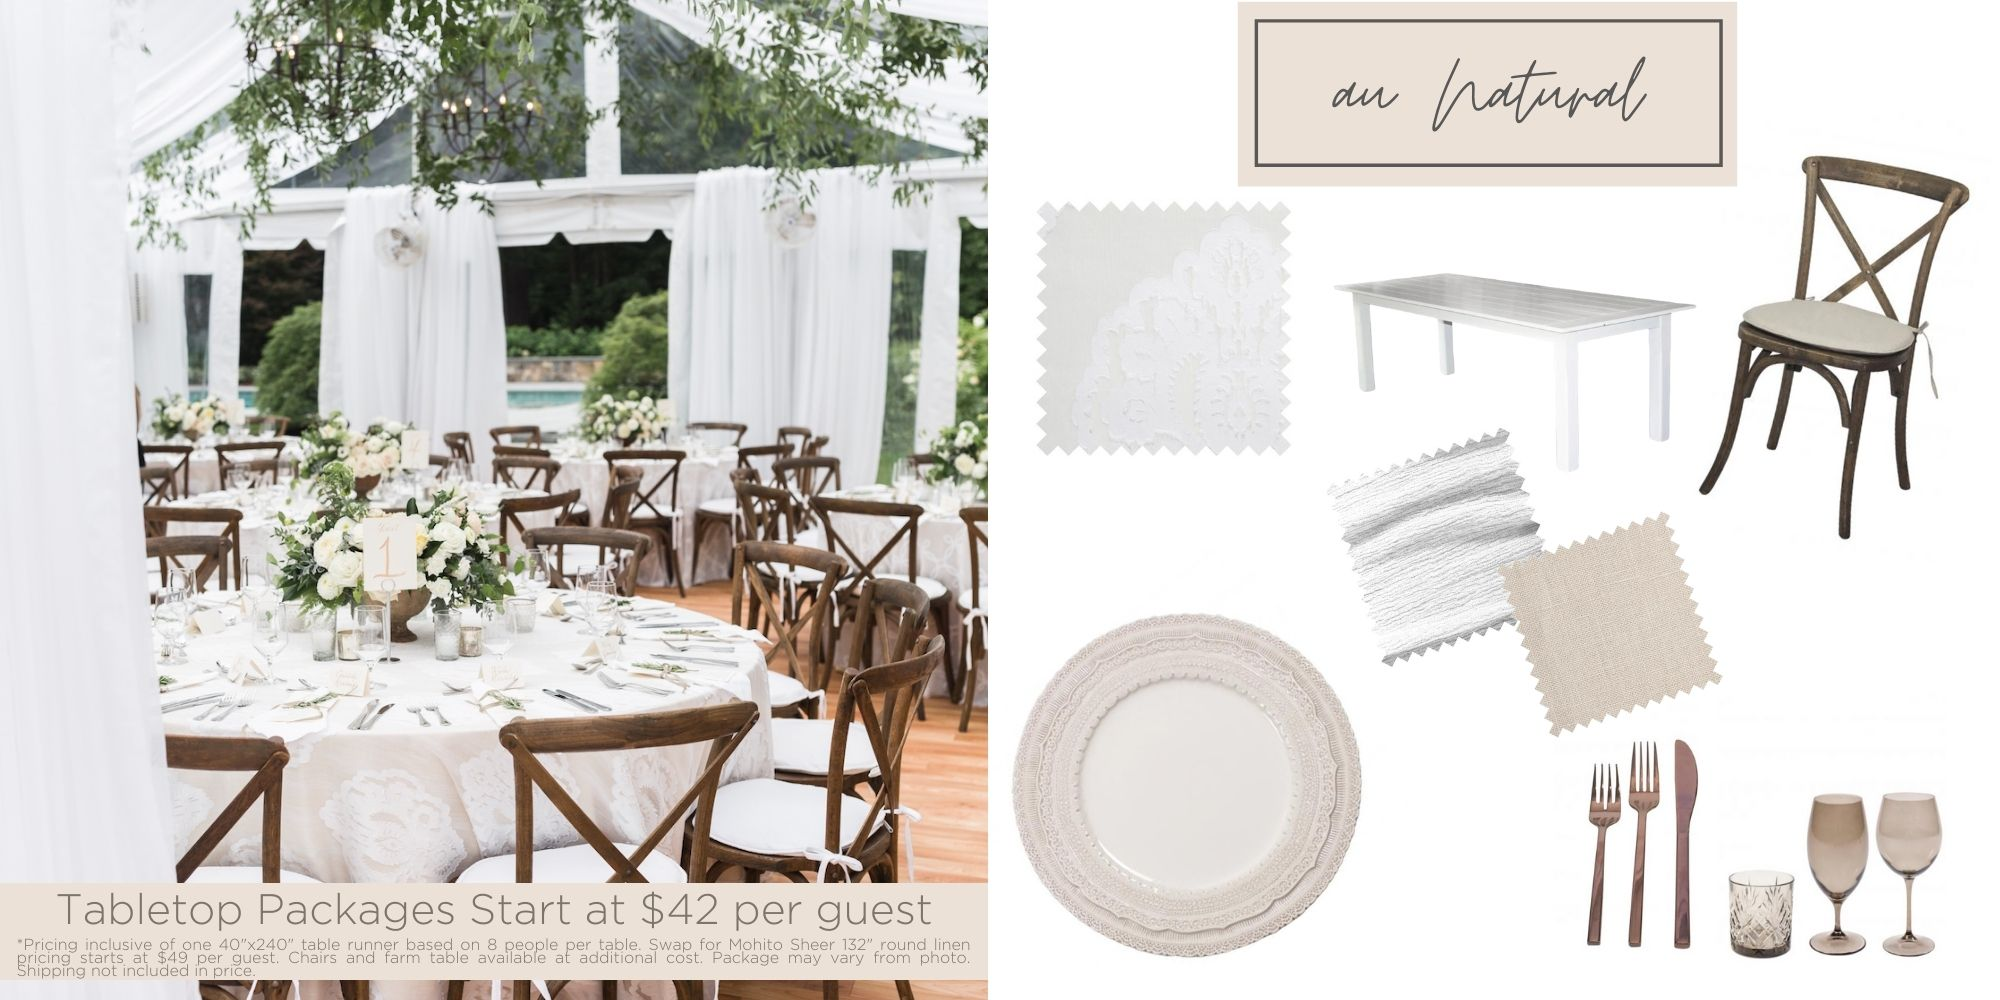 Fall Wedding Inspiration, Wedding and Event Rentals, Holiday Hosting, Holiday Tabletop